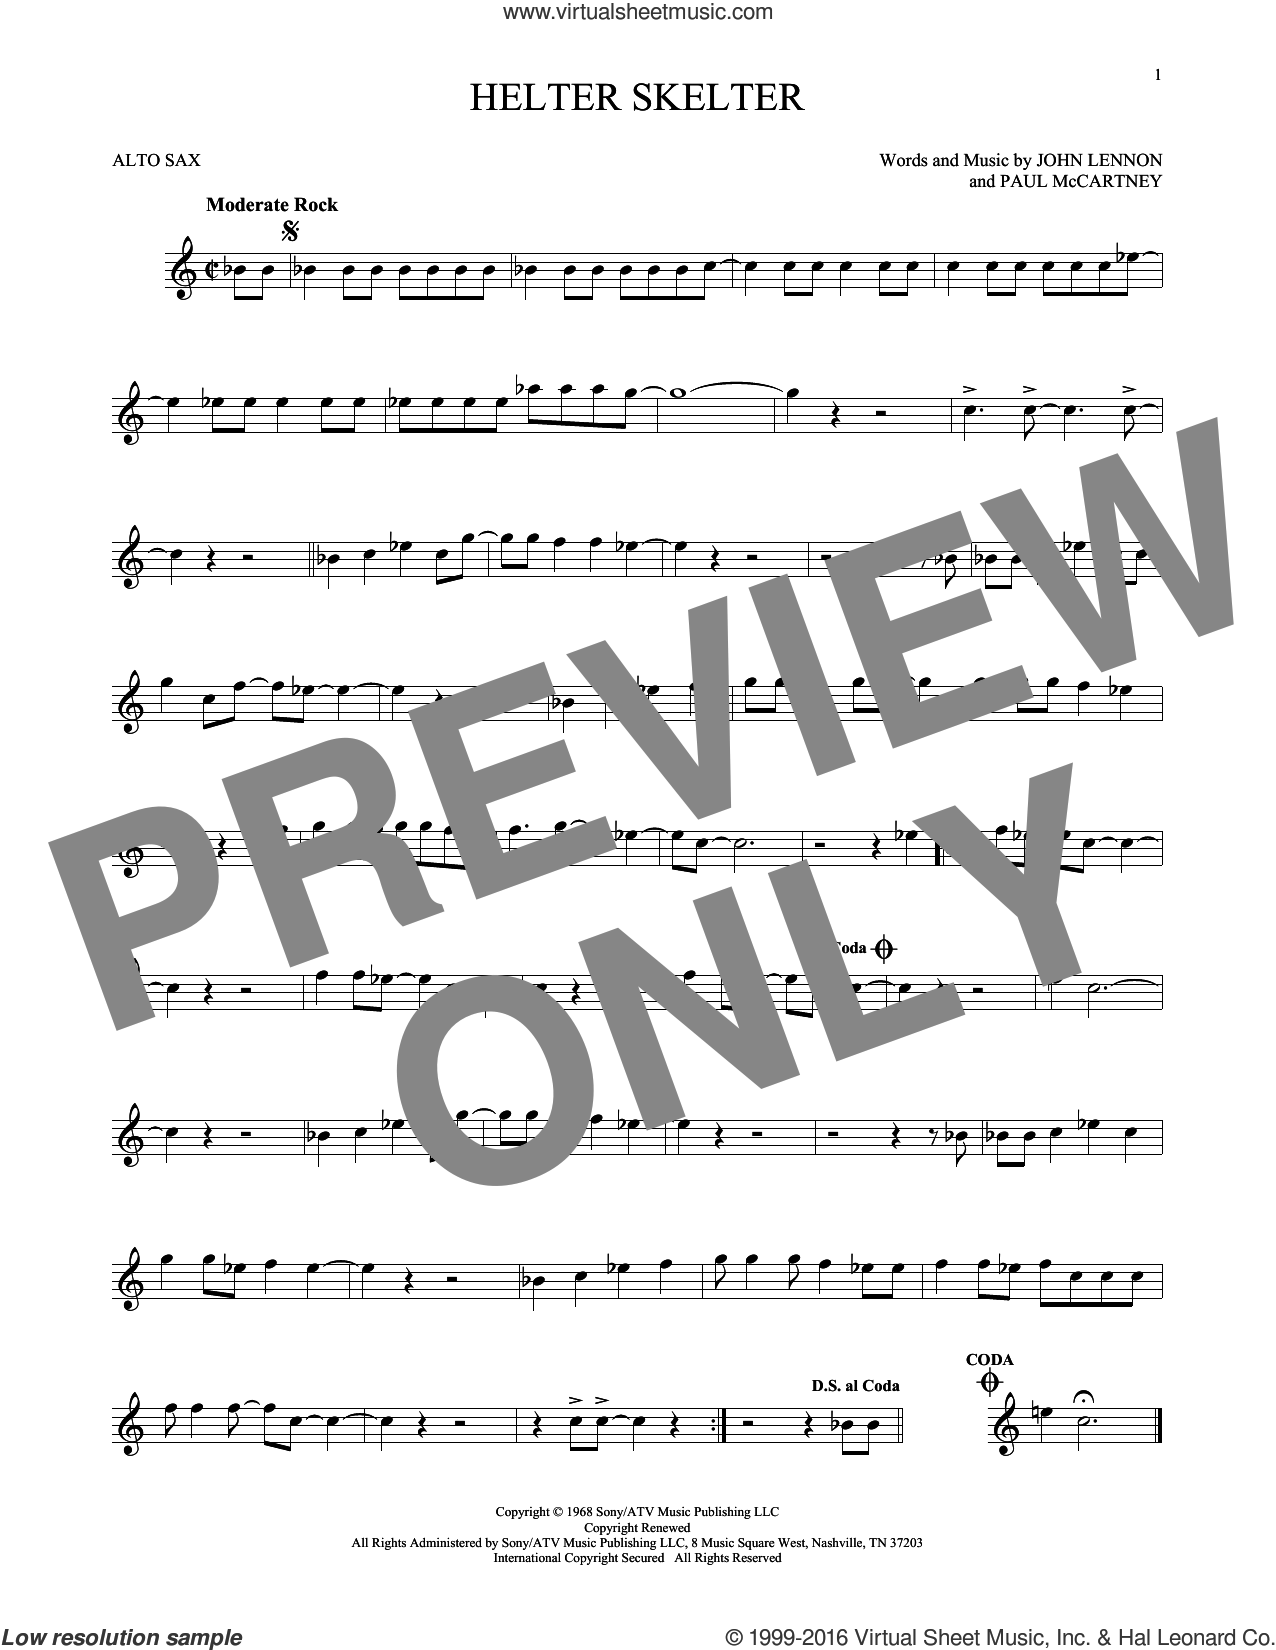 Helter Skelter sheet music for alto saxophone solo by The Beatles, John Lennon and Paul McCartney, intermediate